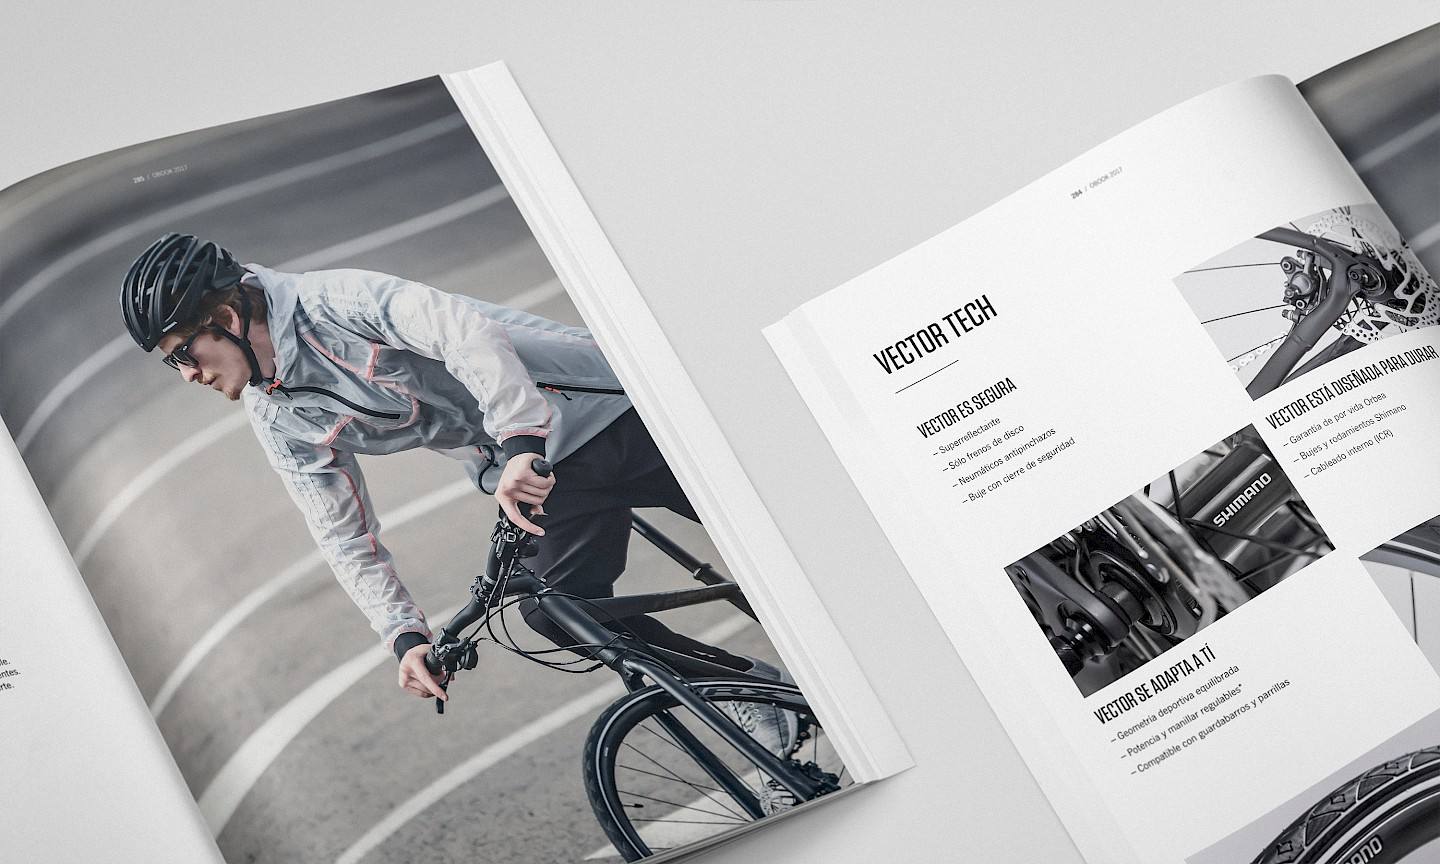 print orbea narrative move lifestyle 03 branding design sports magazine spaces